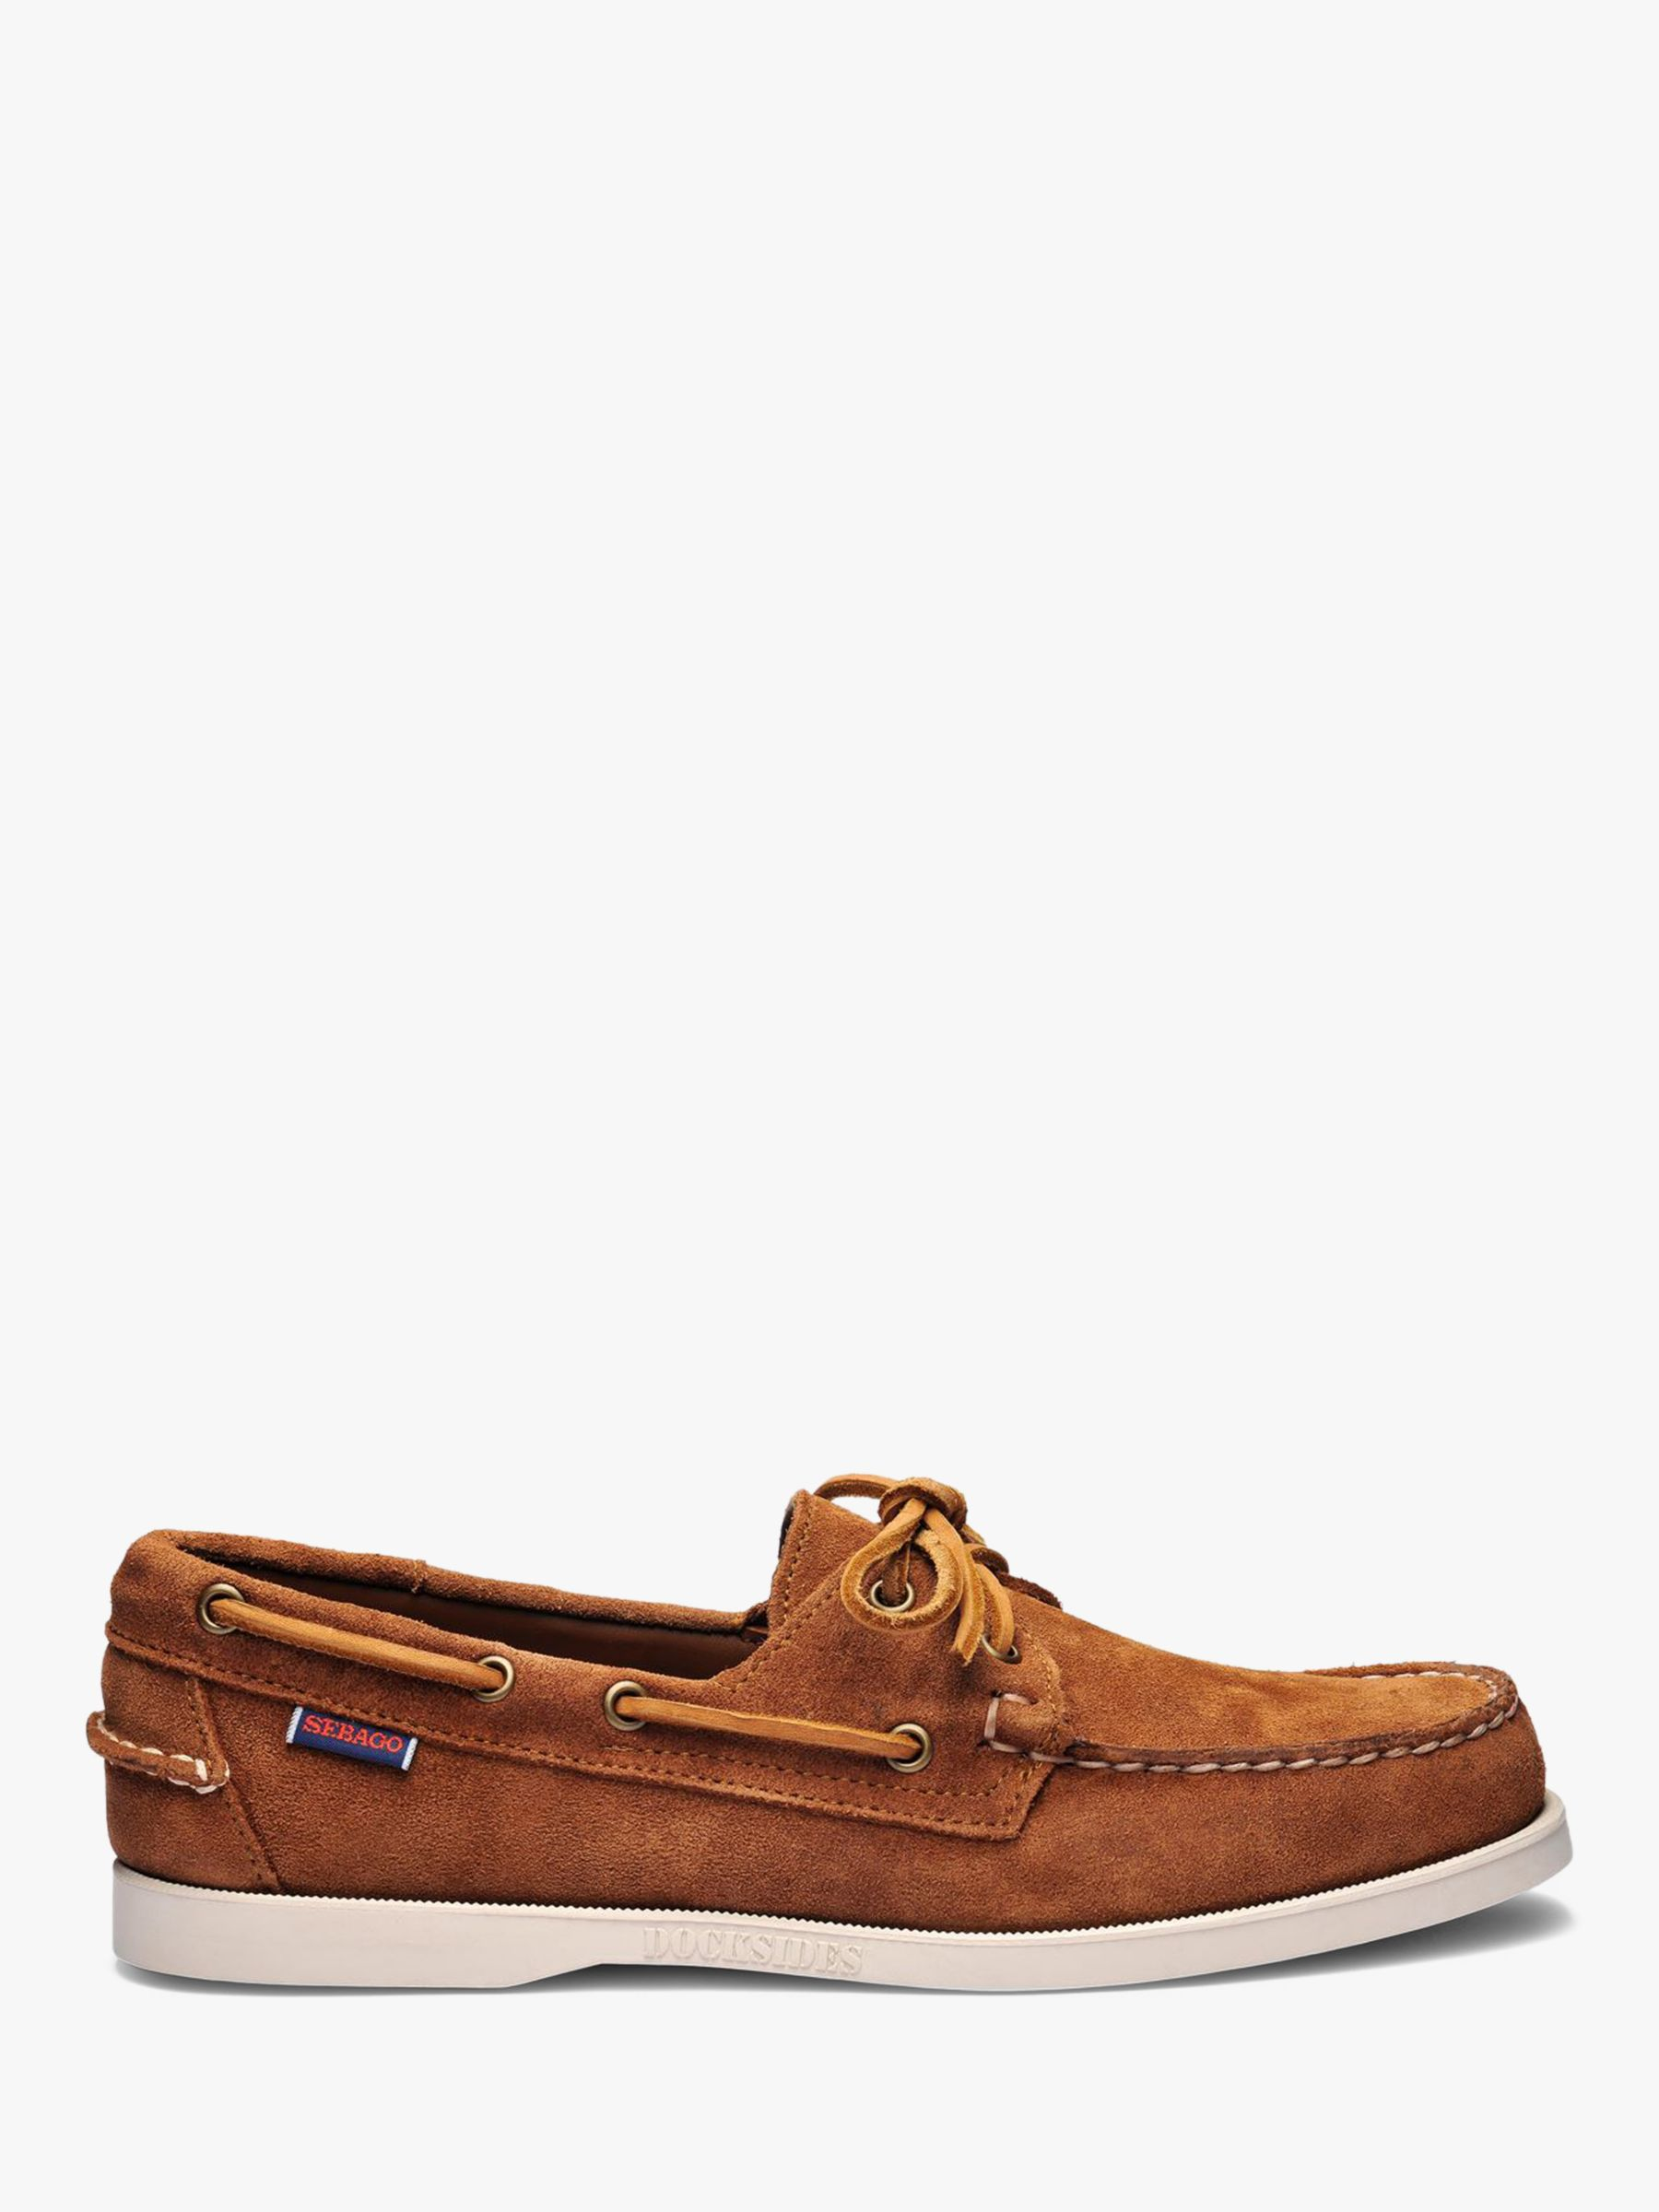 Sebago Sebago Dockside Portland Suede Boat Shoes, Brown Cognac